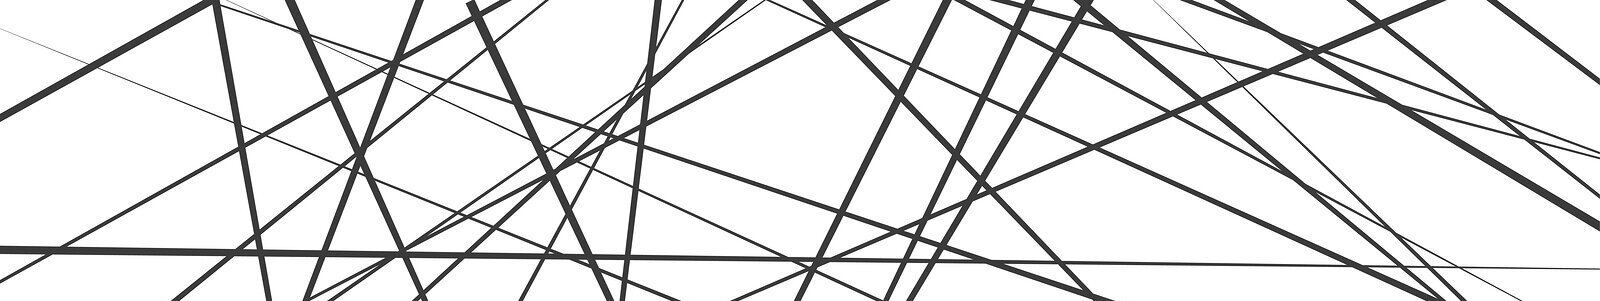 abstract black lines of various widths on white background | questions about mental health services & counseling in Tulsa, OK